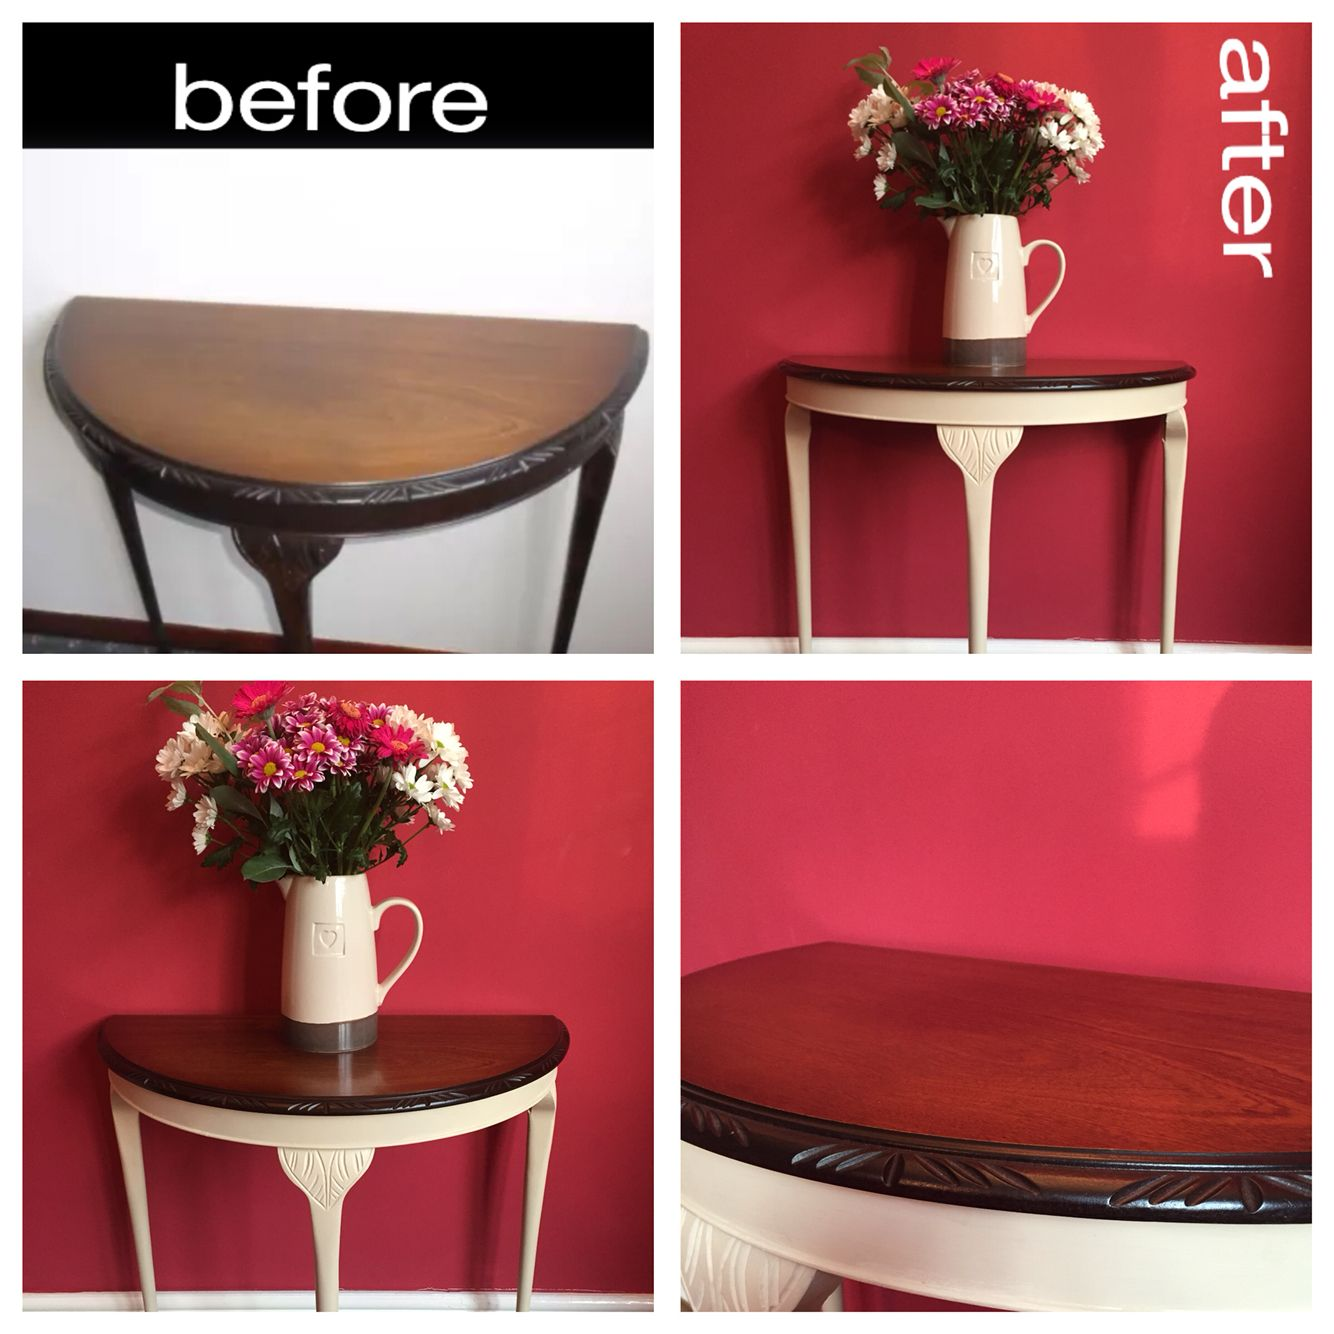 Before And After Of Our Half Moon Table Entrance Table Decor Half Moon Table Fusion Furniture